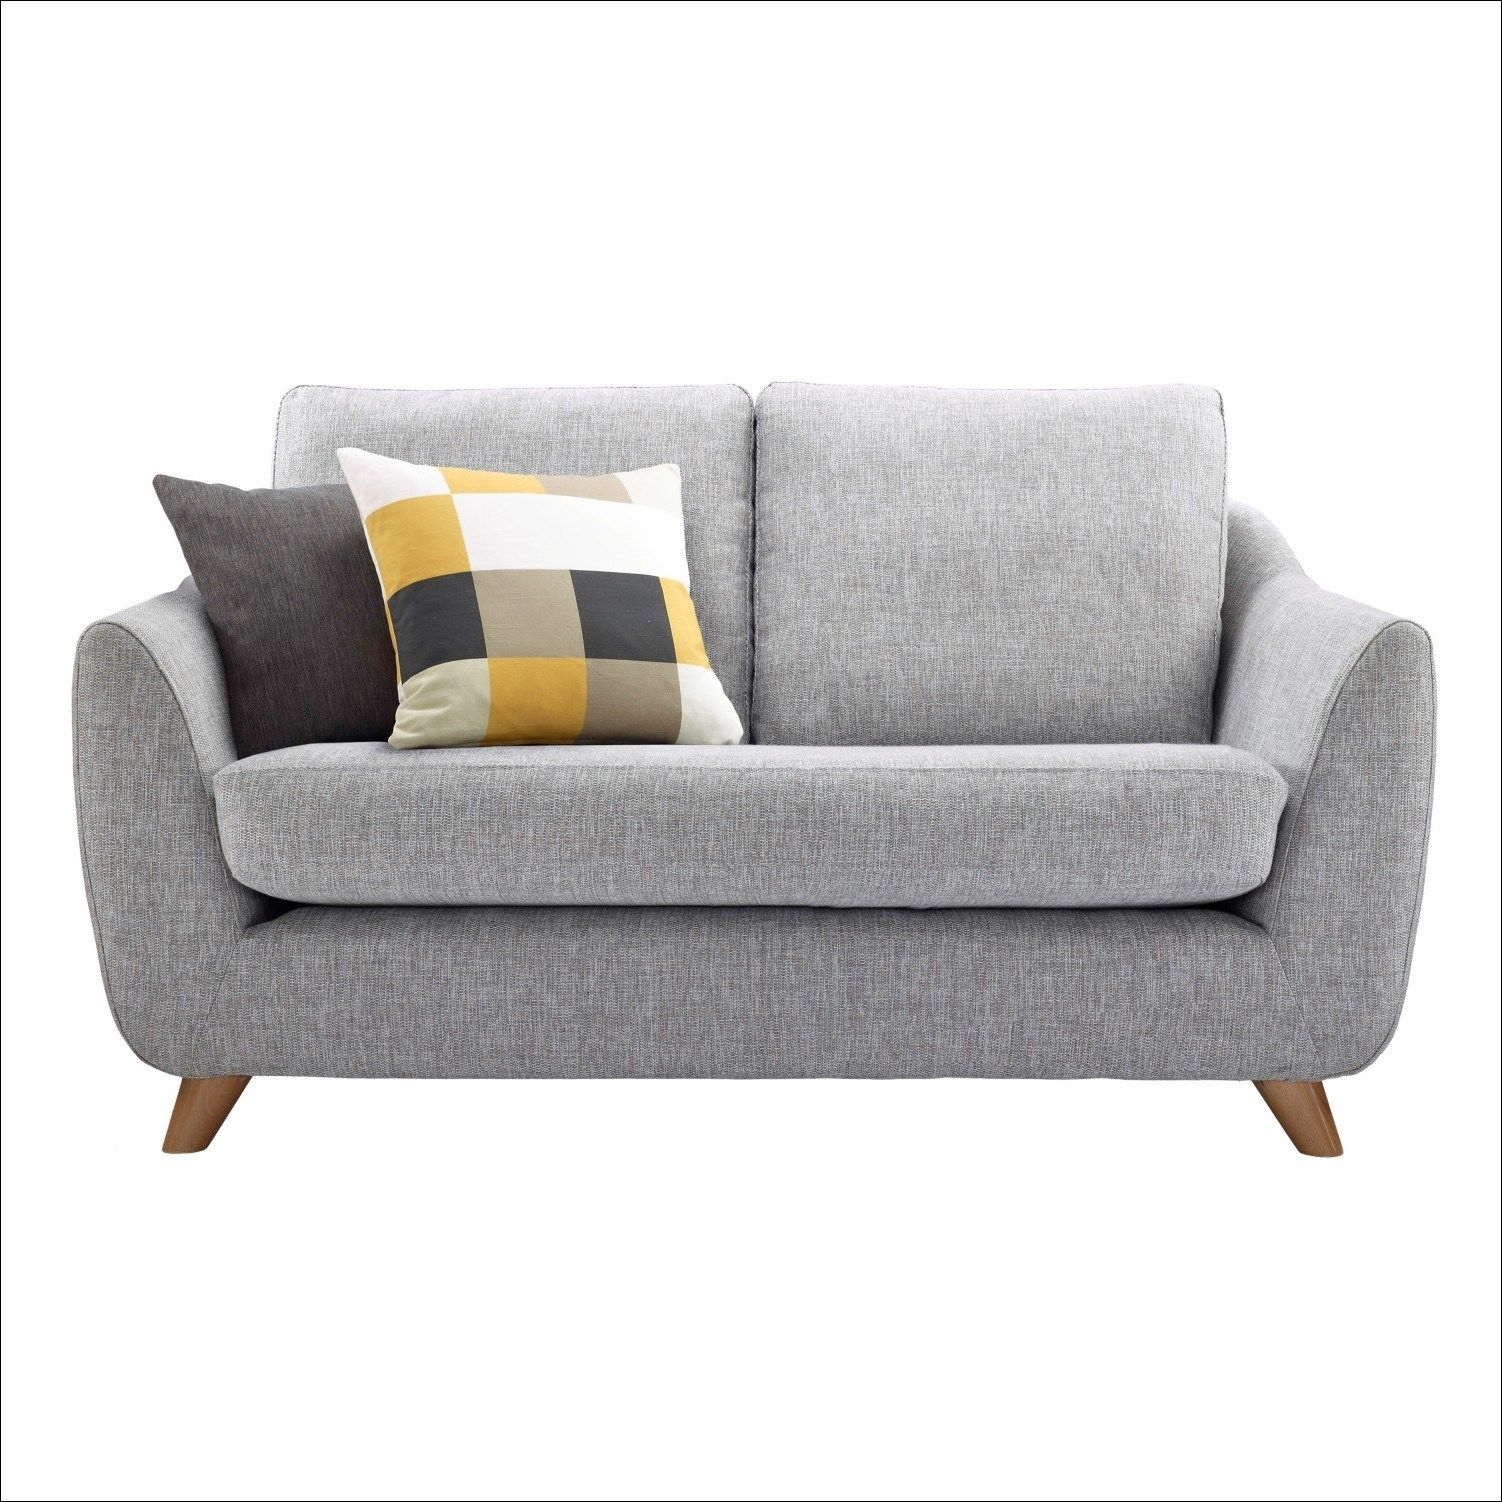 35 Ideas Modern Loveseat For Small Spaces | algún dia | Pinterest | Sofa,  Couch and Small sofa